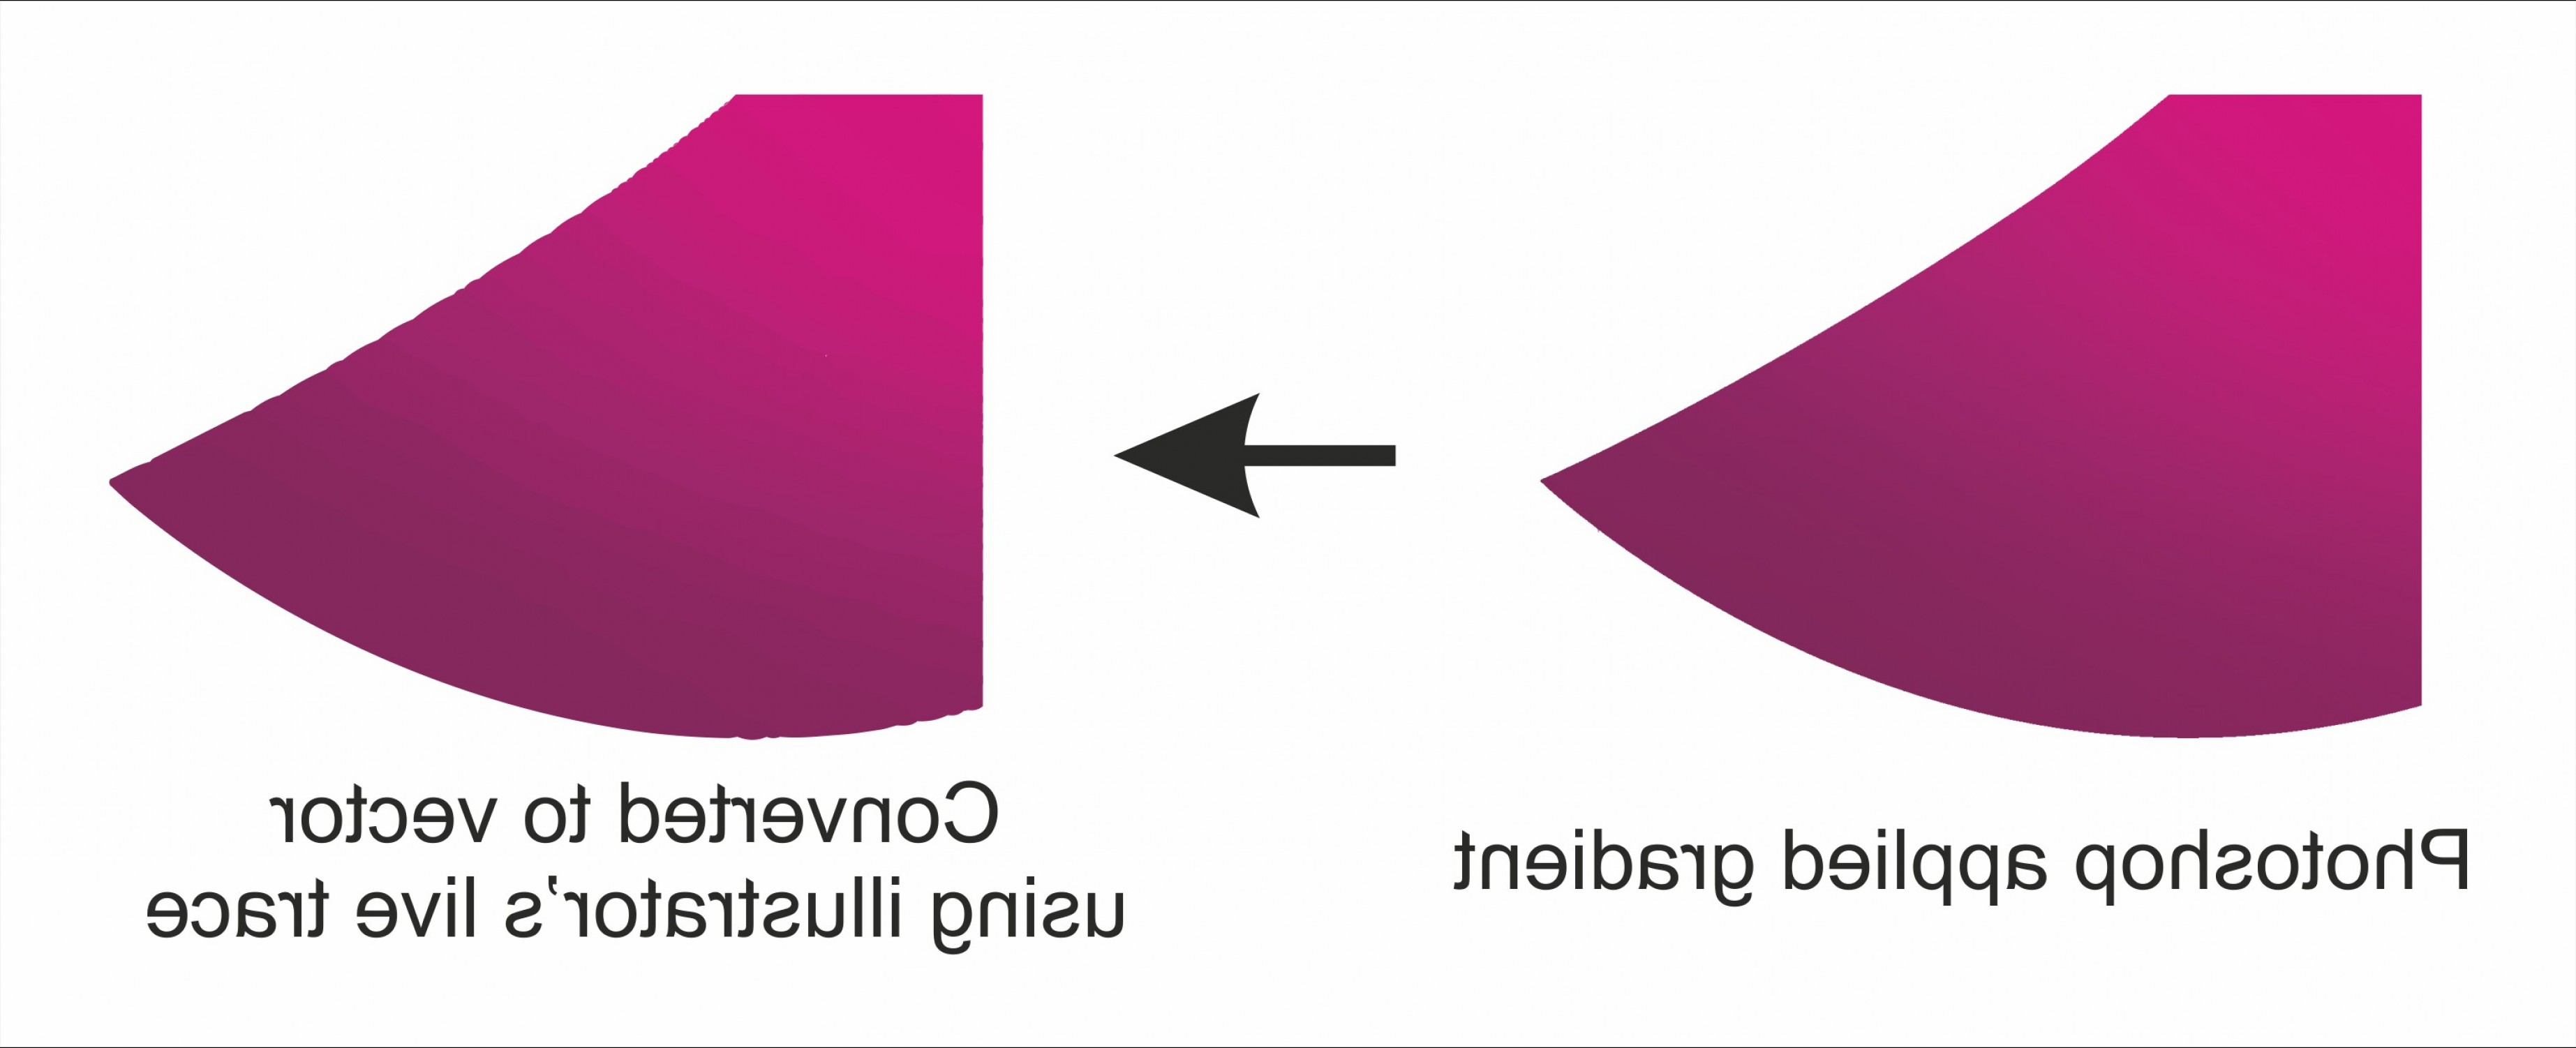 Convert Raster To Vector: Is There A Way To Convert A Gradient Made In Photoshop Into A Vector Mesh